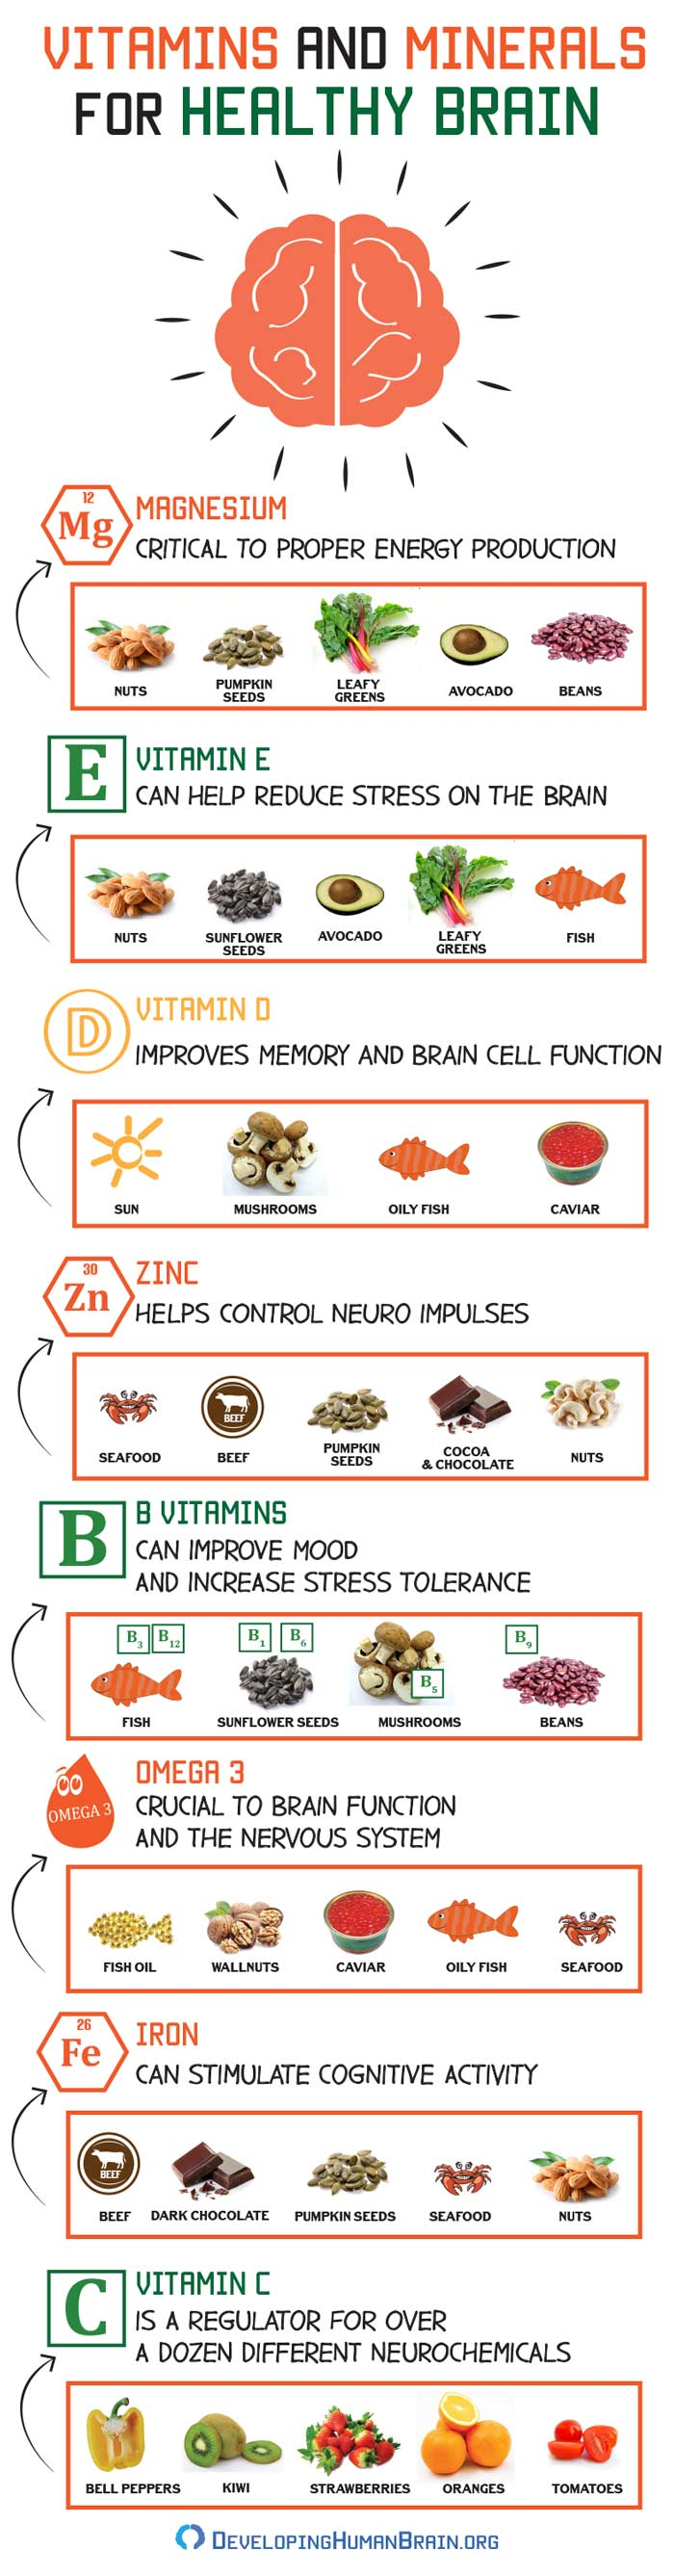 Vitamins and Minerals for Healthy Brain